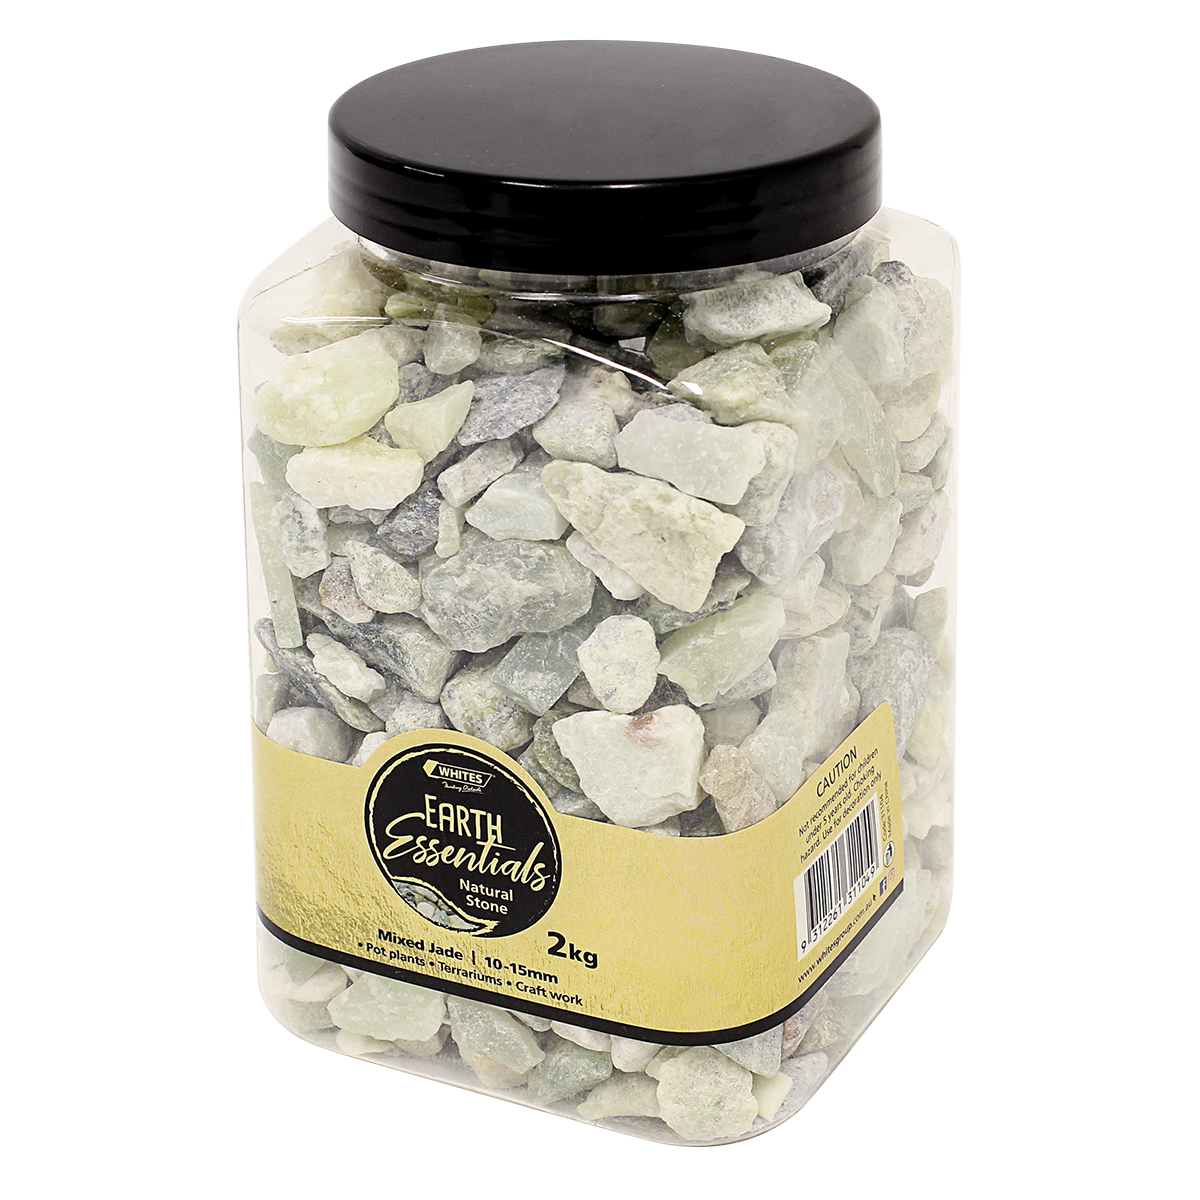 31104 - Mixed Jade Rock Jar 2kg